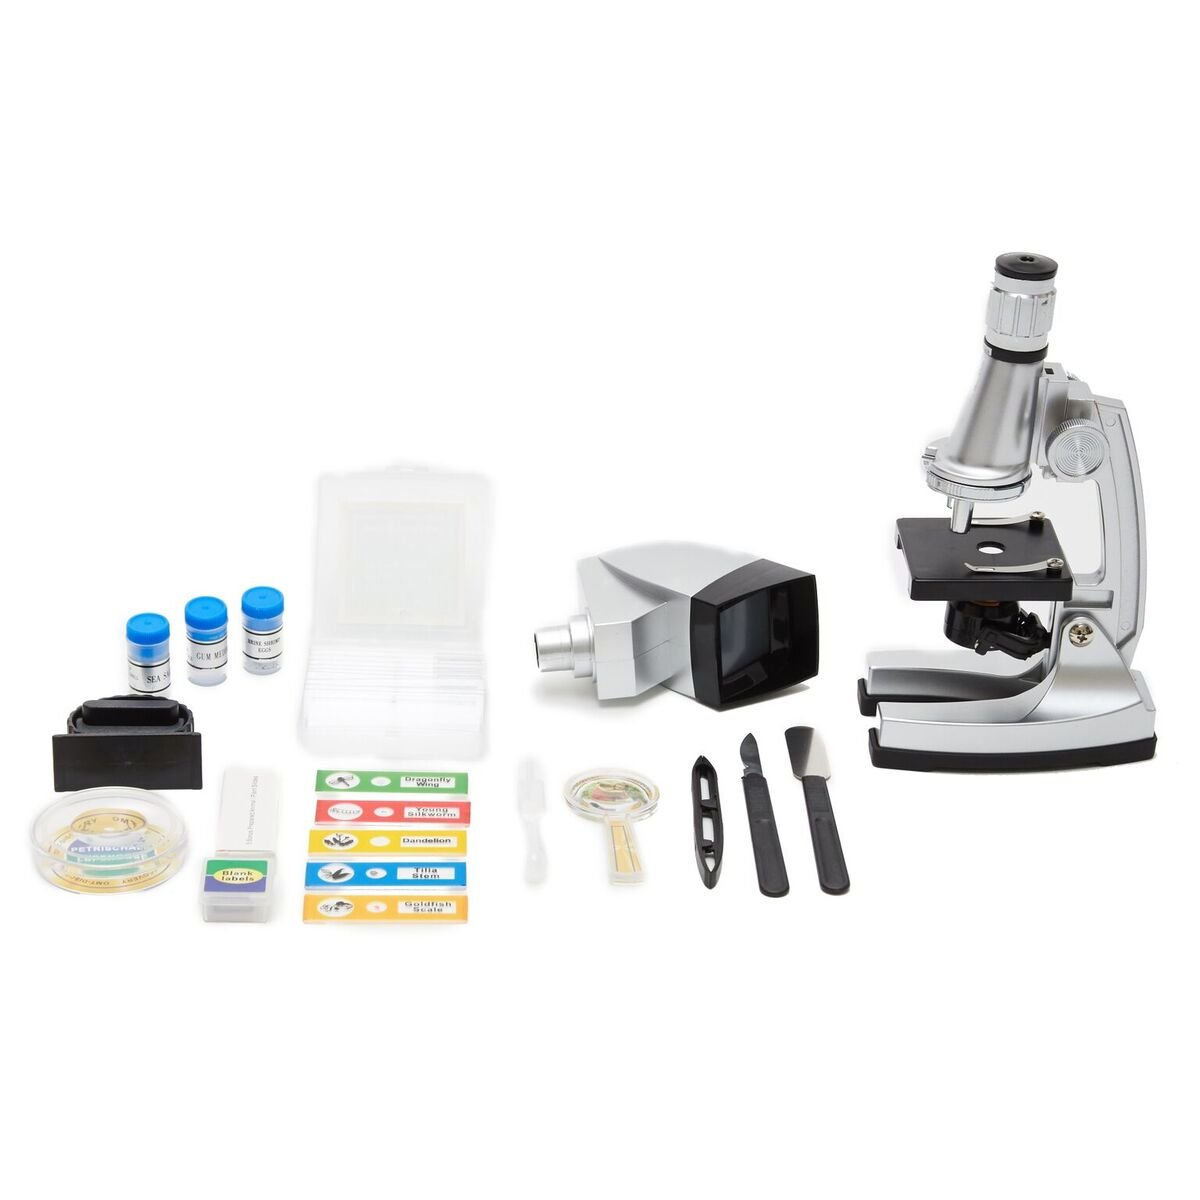 Microscope 50X-1200X for Kids Students adults,10-20 Times Zoom Childrens Biological Microscope Set 1200 Times Metal Microscope for School Laboratory Home Biological Scientific Research Education